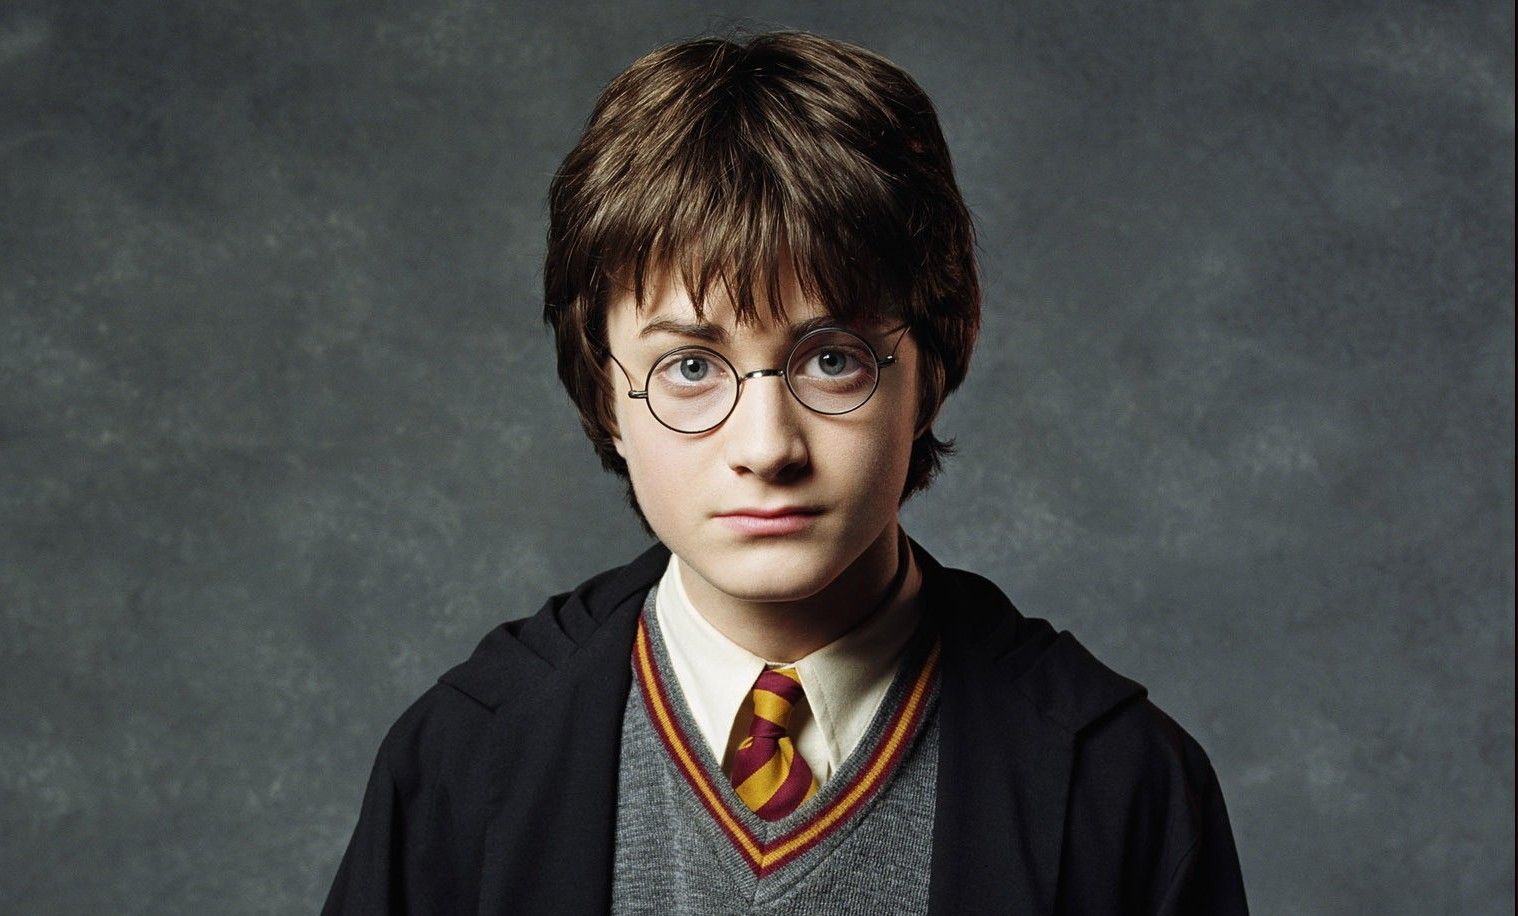 harry_potter-281038